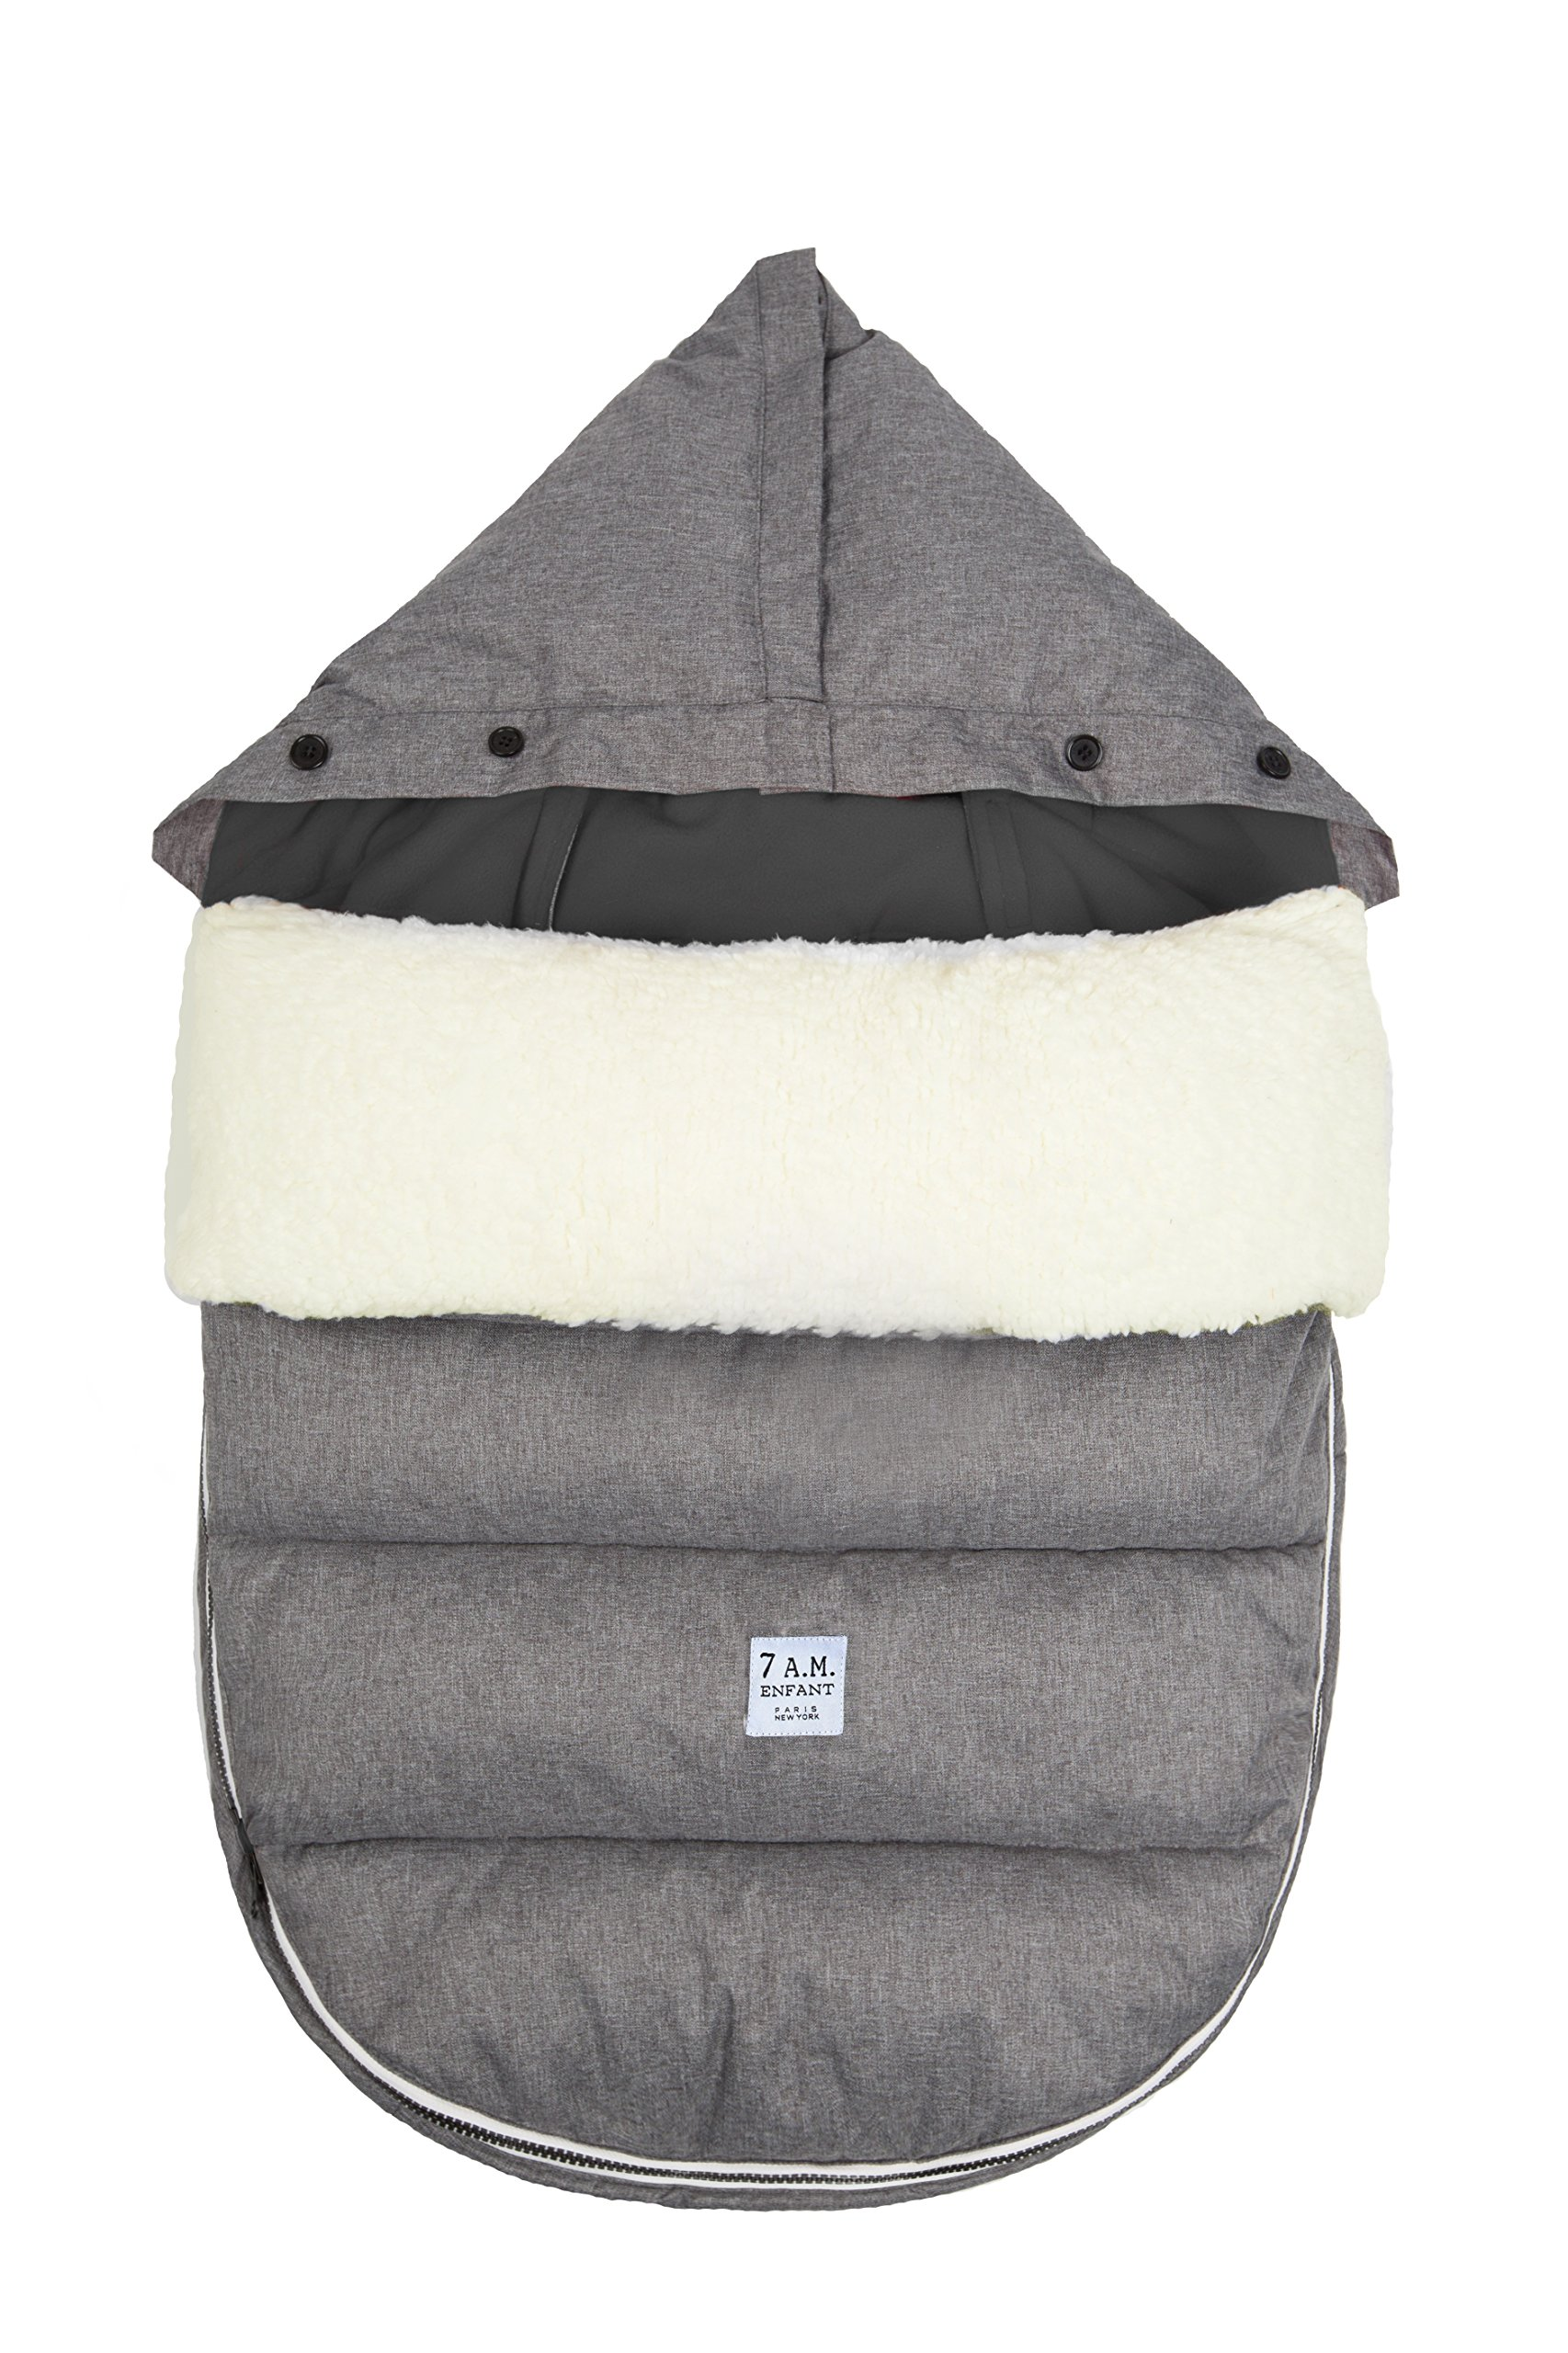 7 A.M. Enfant LambPod (Small/Medium, Heather Grey)